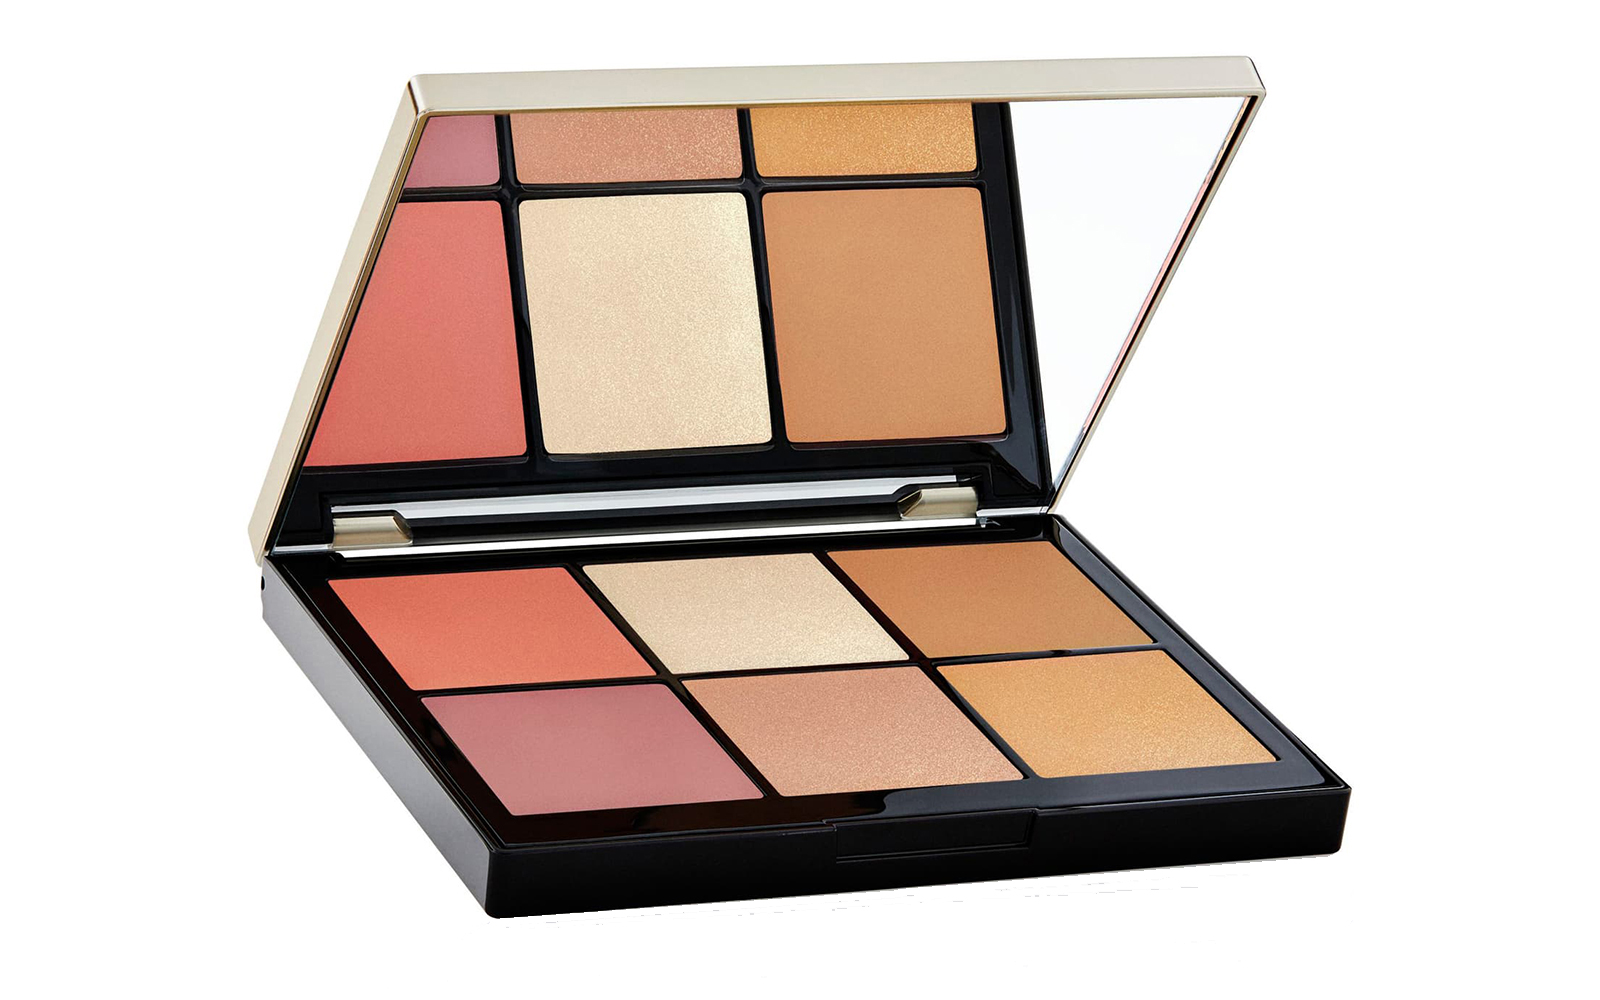 Laura Mercier Highlight & Glow Face Palette